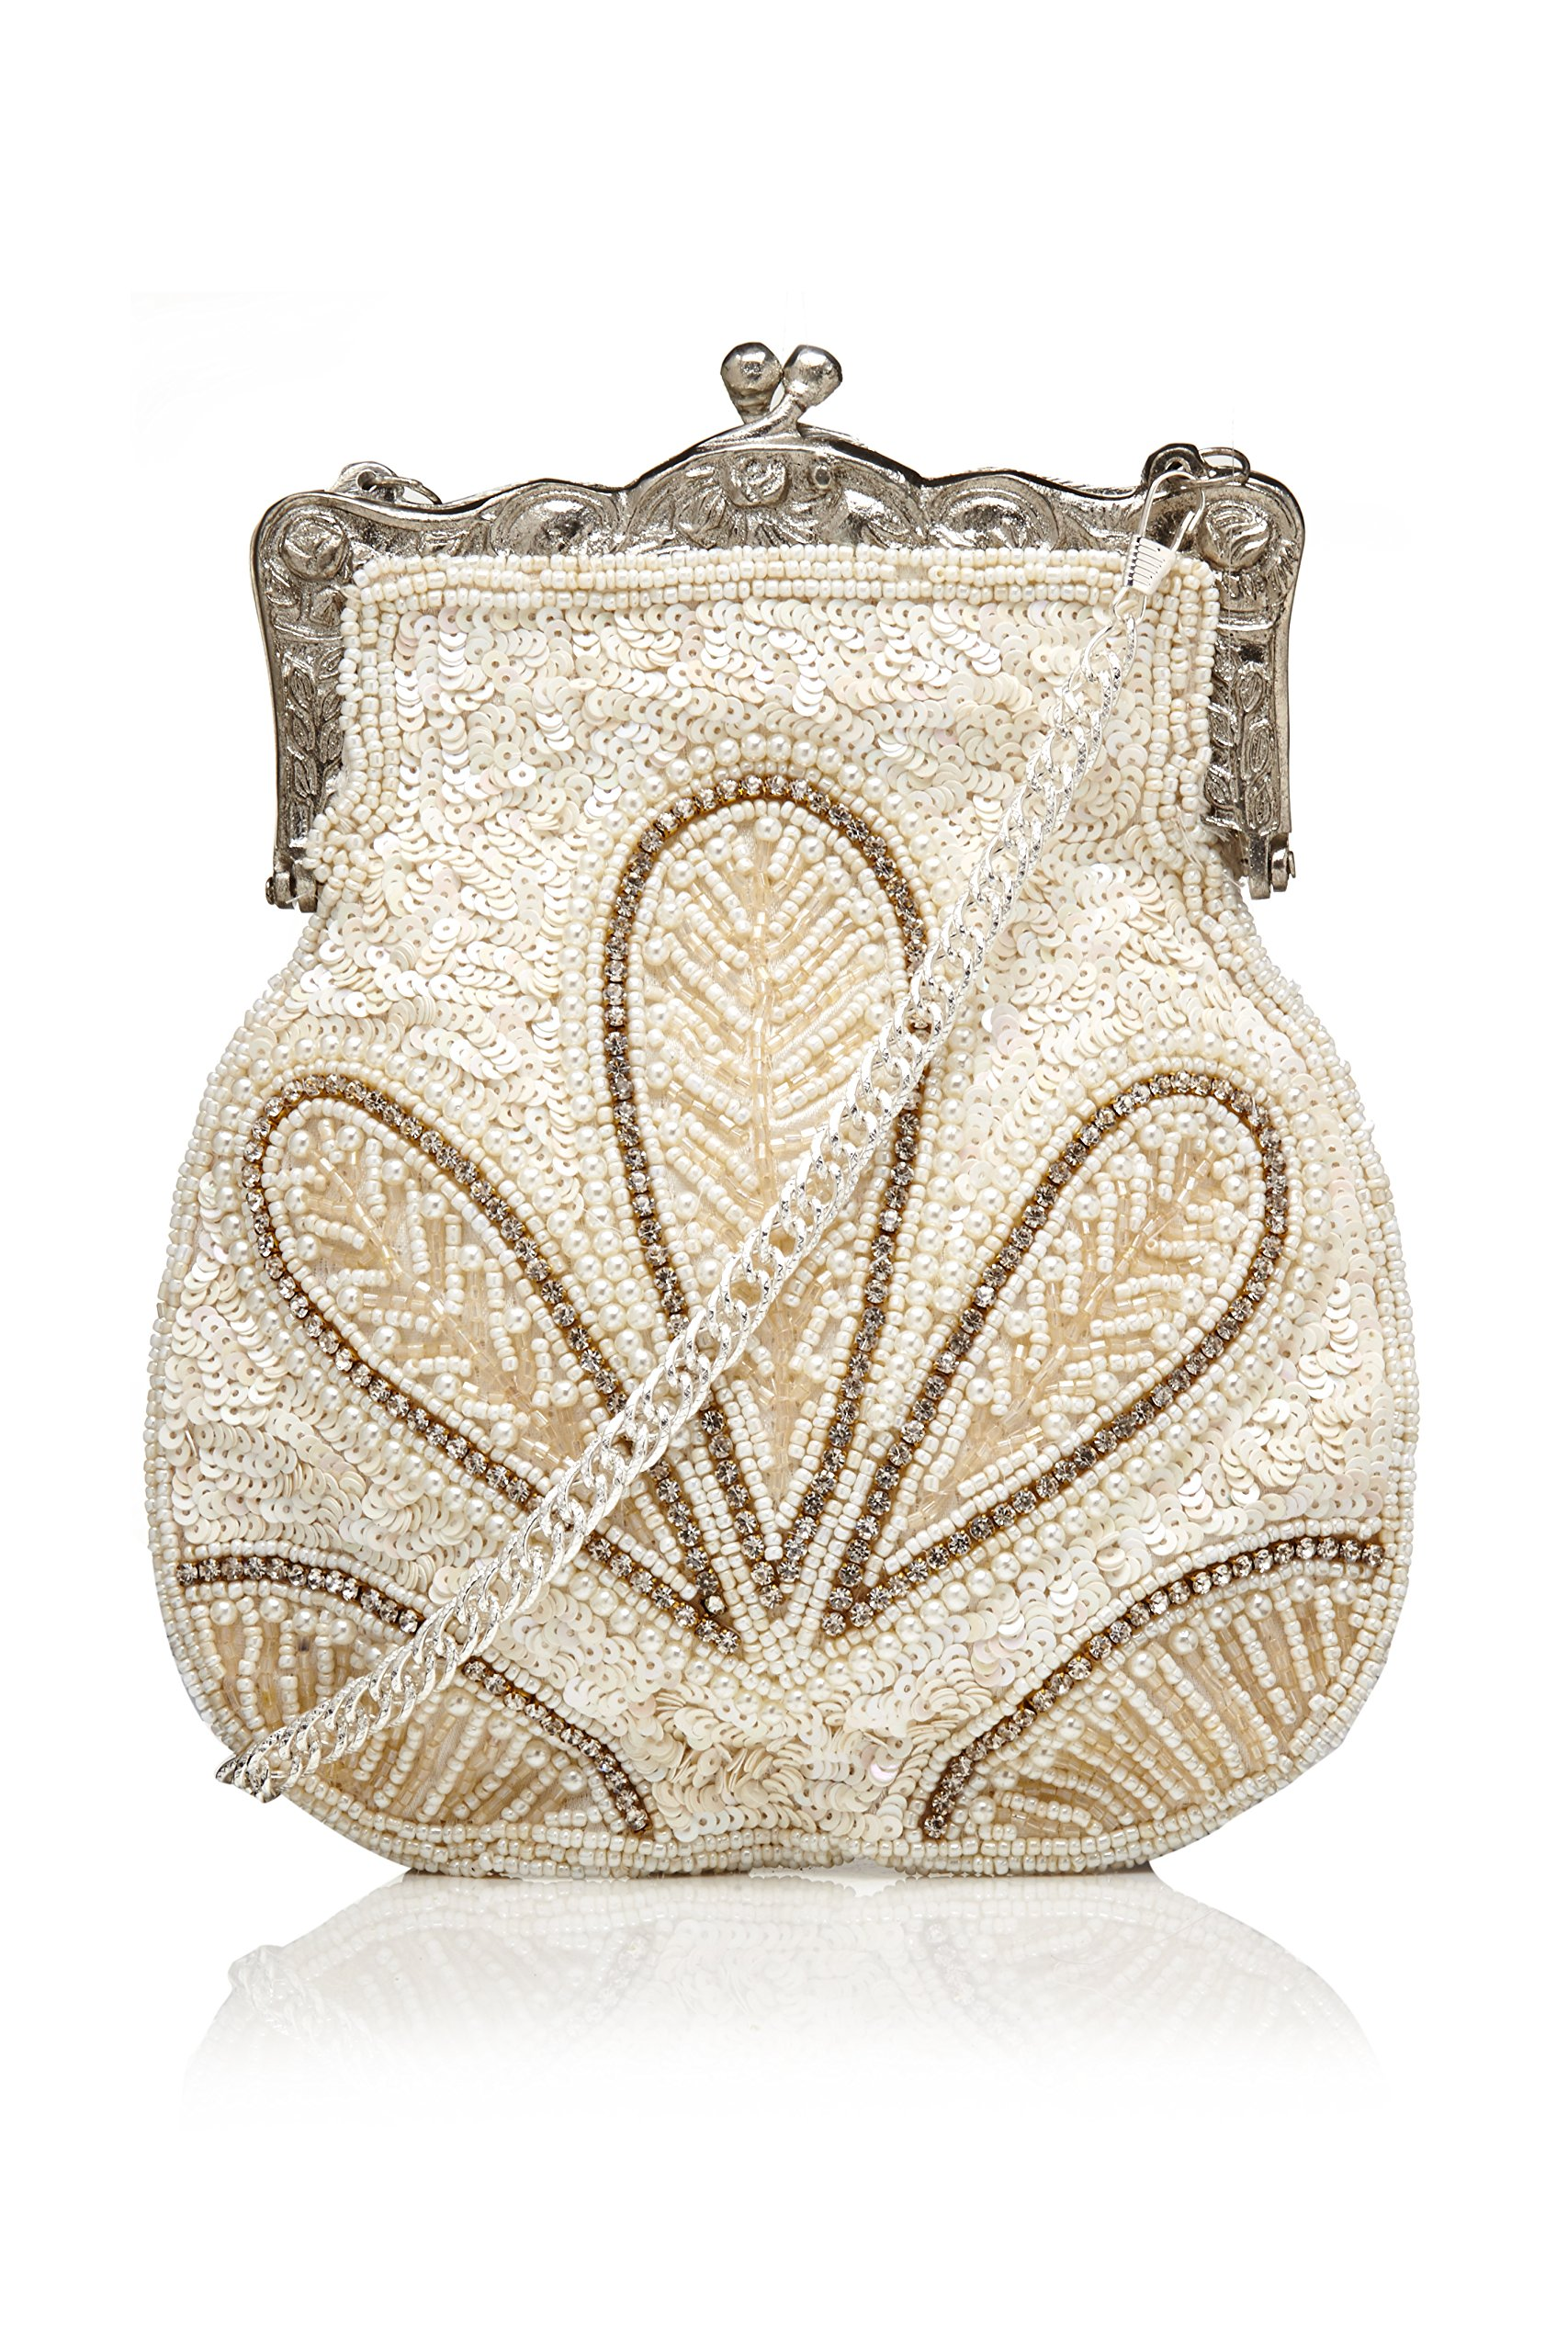 Dollie Vintage Inspired Hand Beaded Flapper Purse in Cream by gatsbylady london